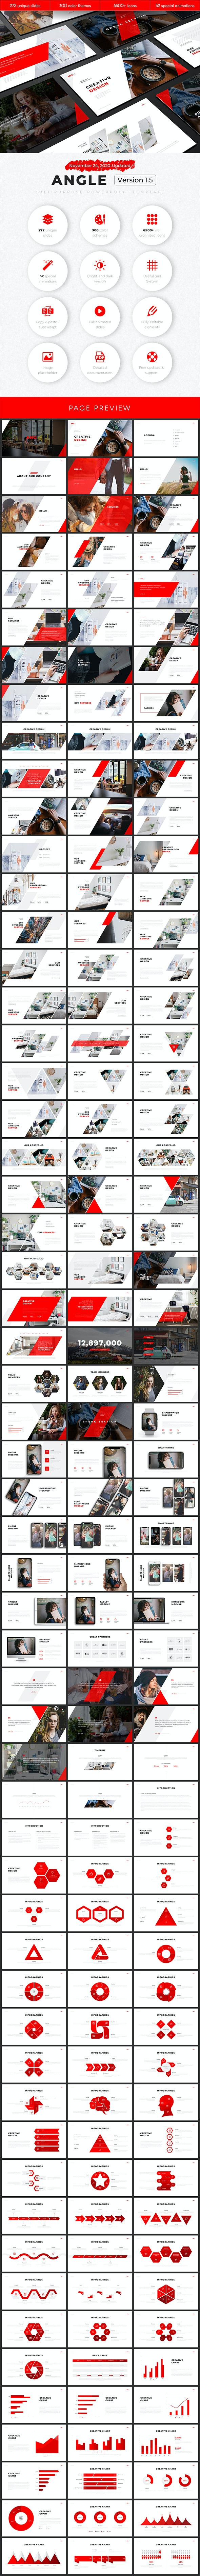 Angle Multipurpose PowerPoint Template v1.5 - Creative PowerPoint Templates